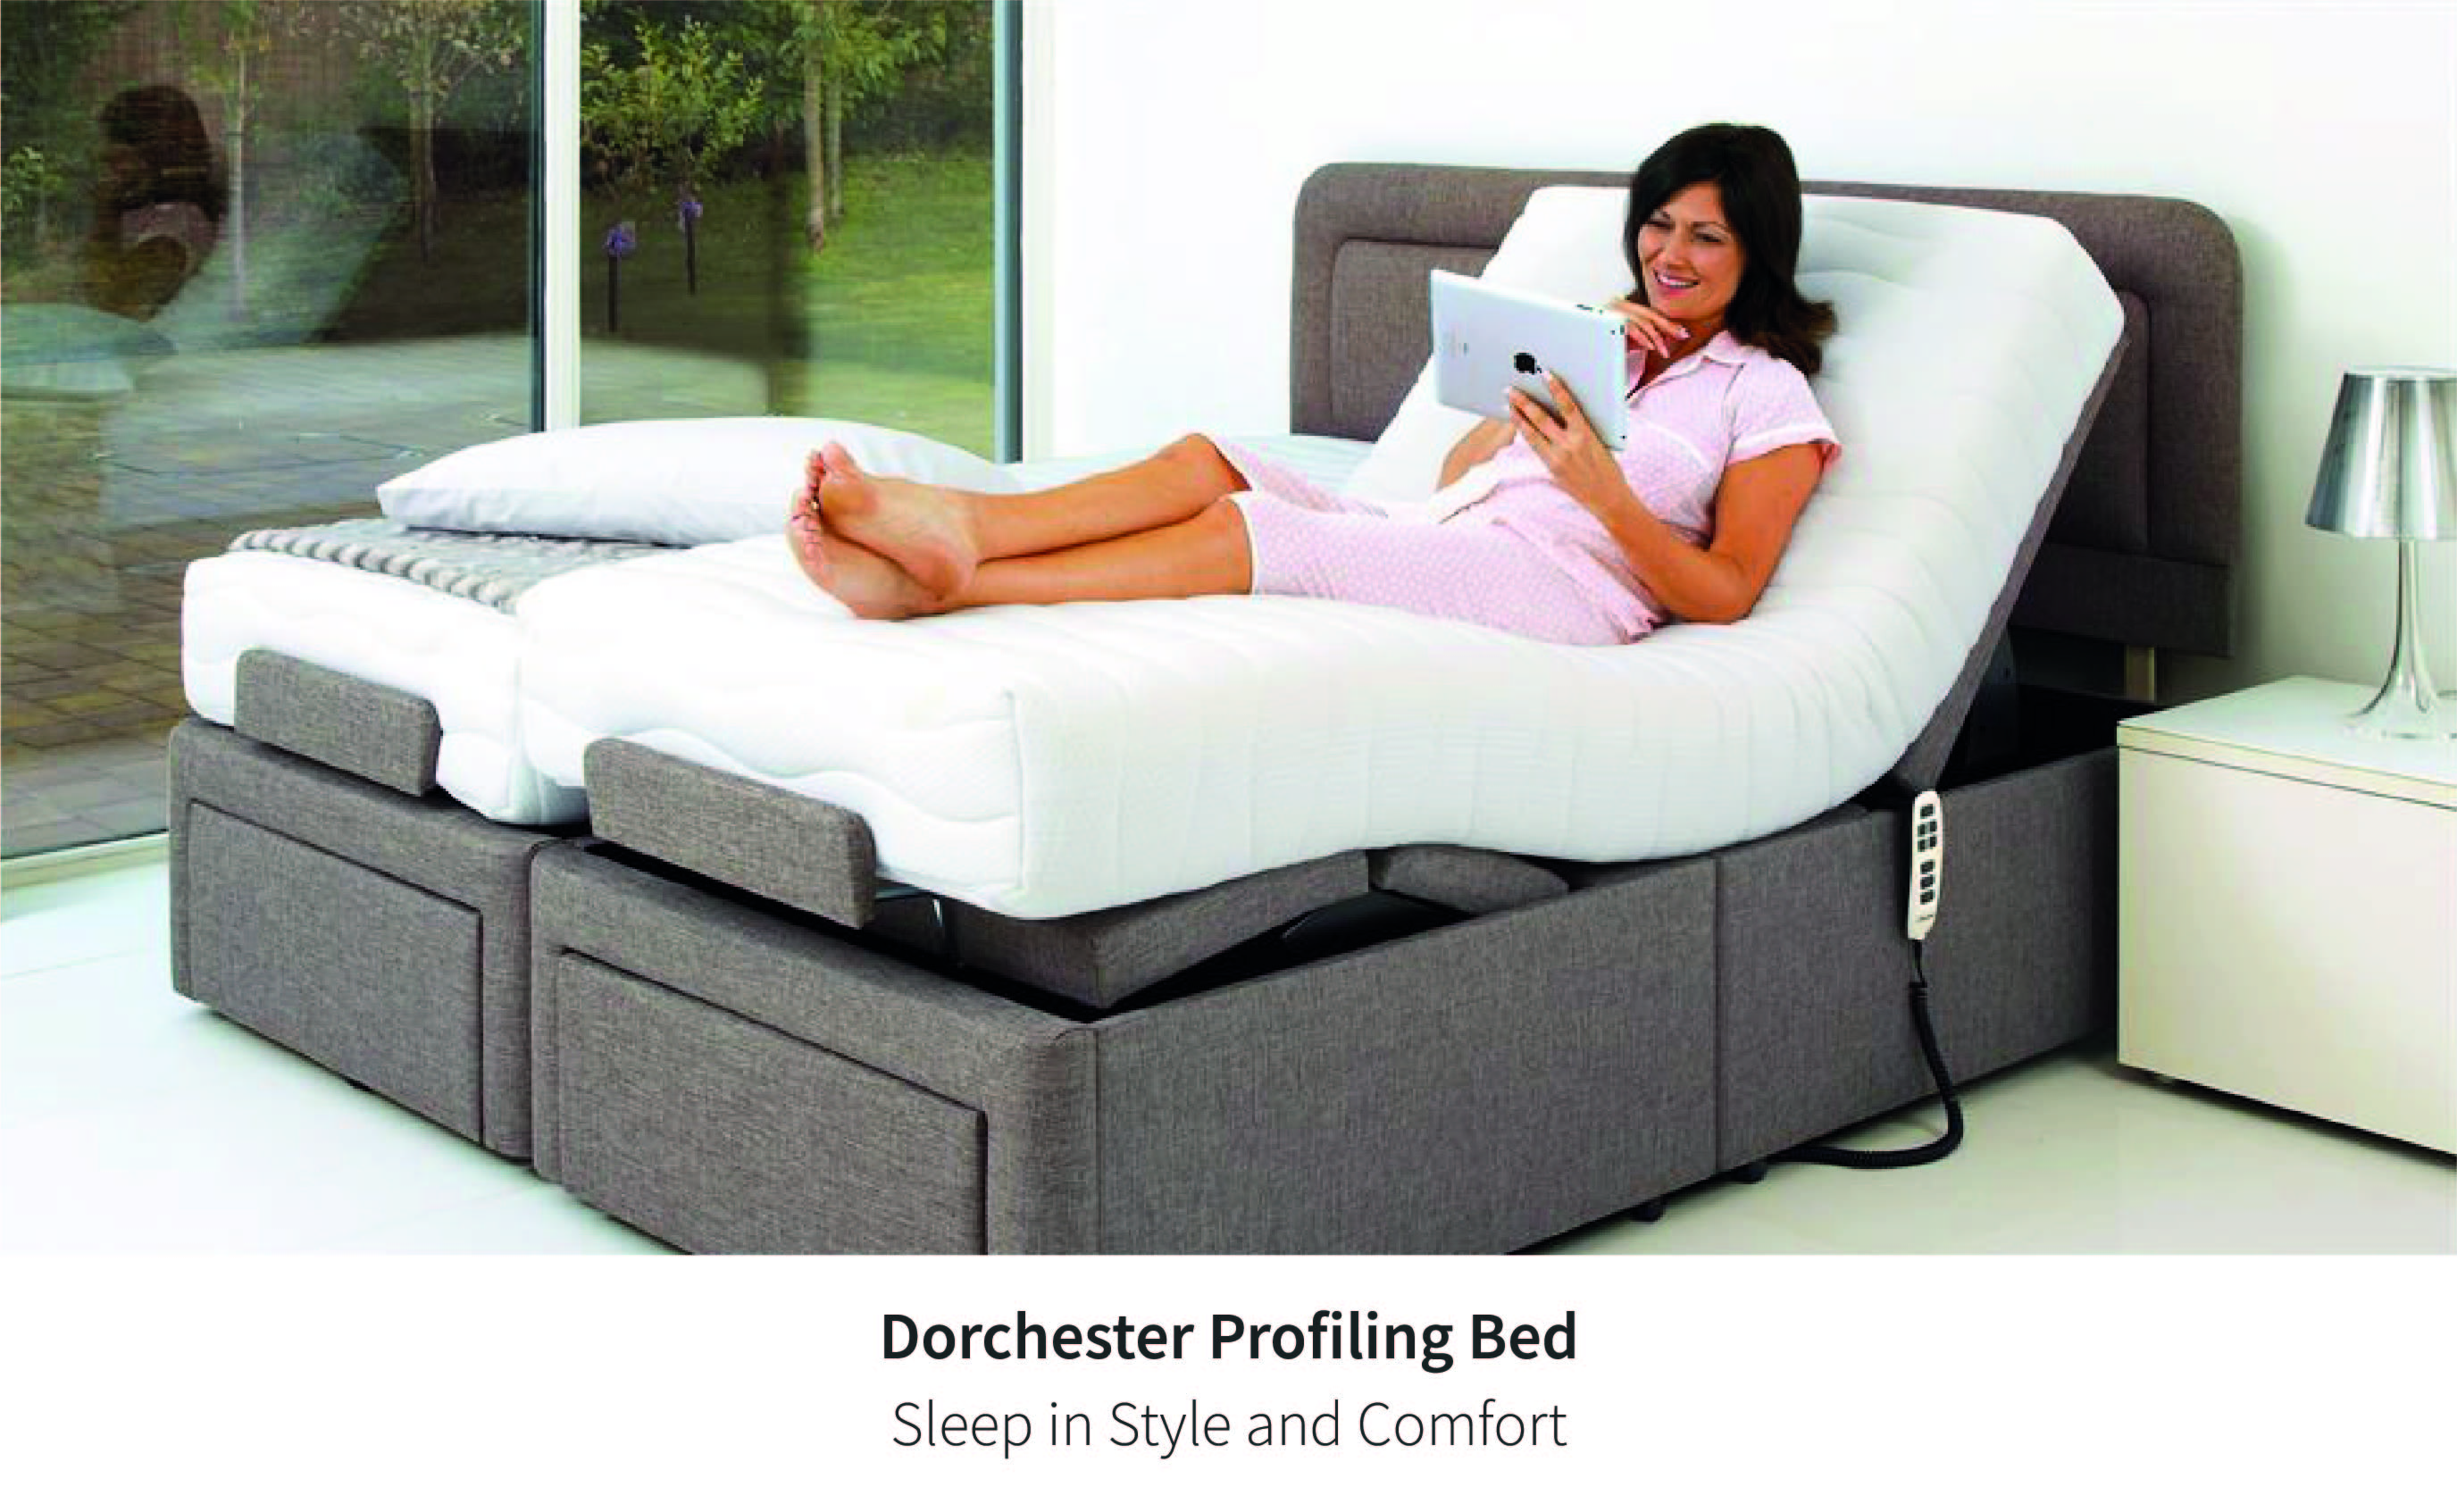 The Dorchester Profiling Bed